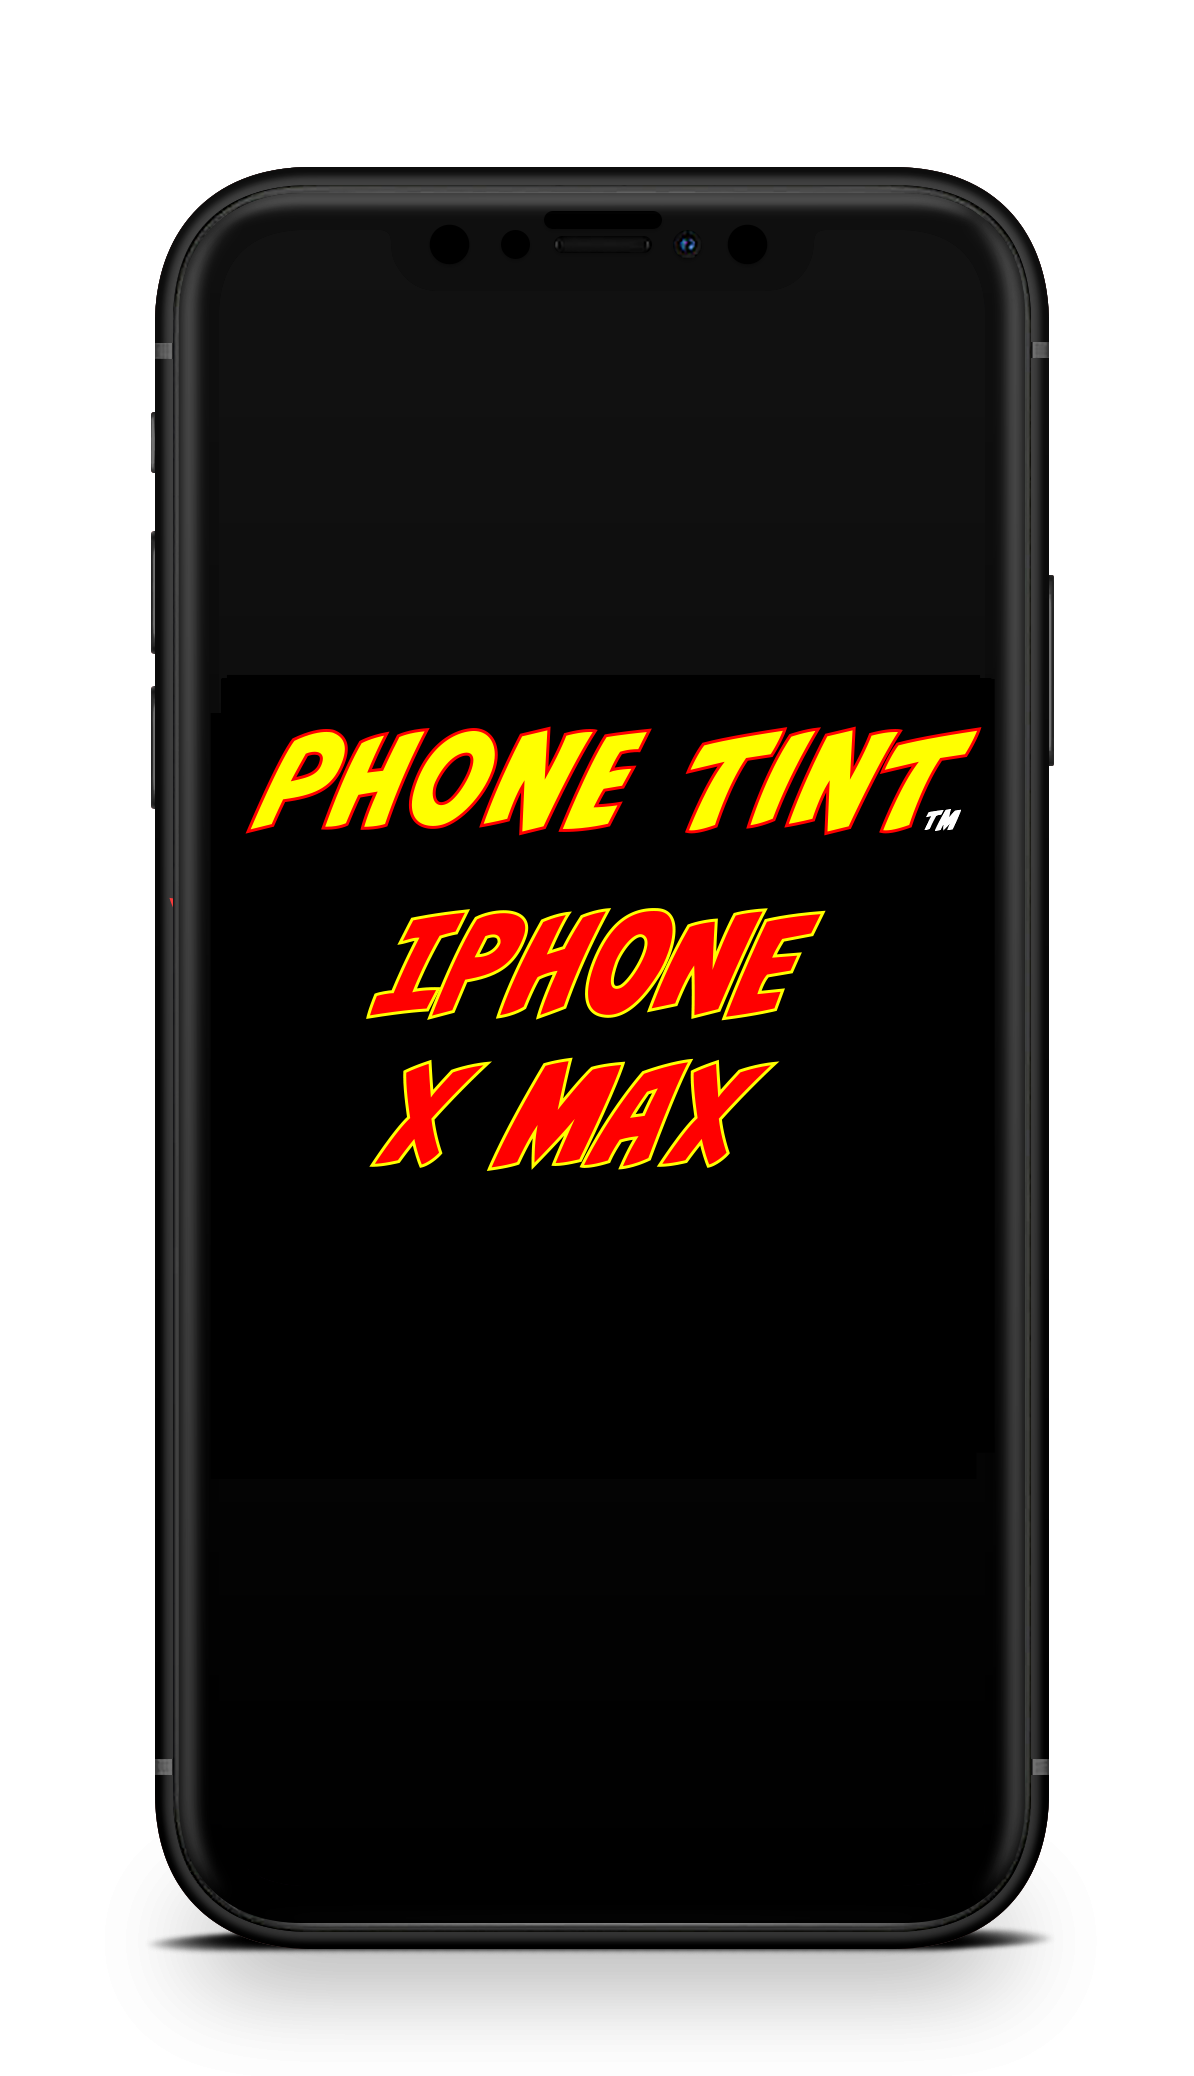 Iphone x max phone tint privacy edge to edge tempered glass screen protector. SKINZ Edmonton